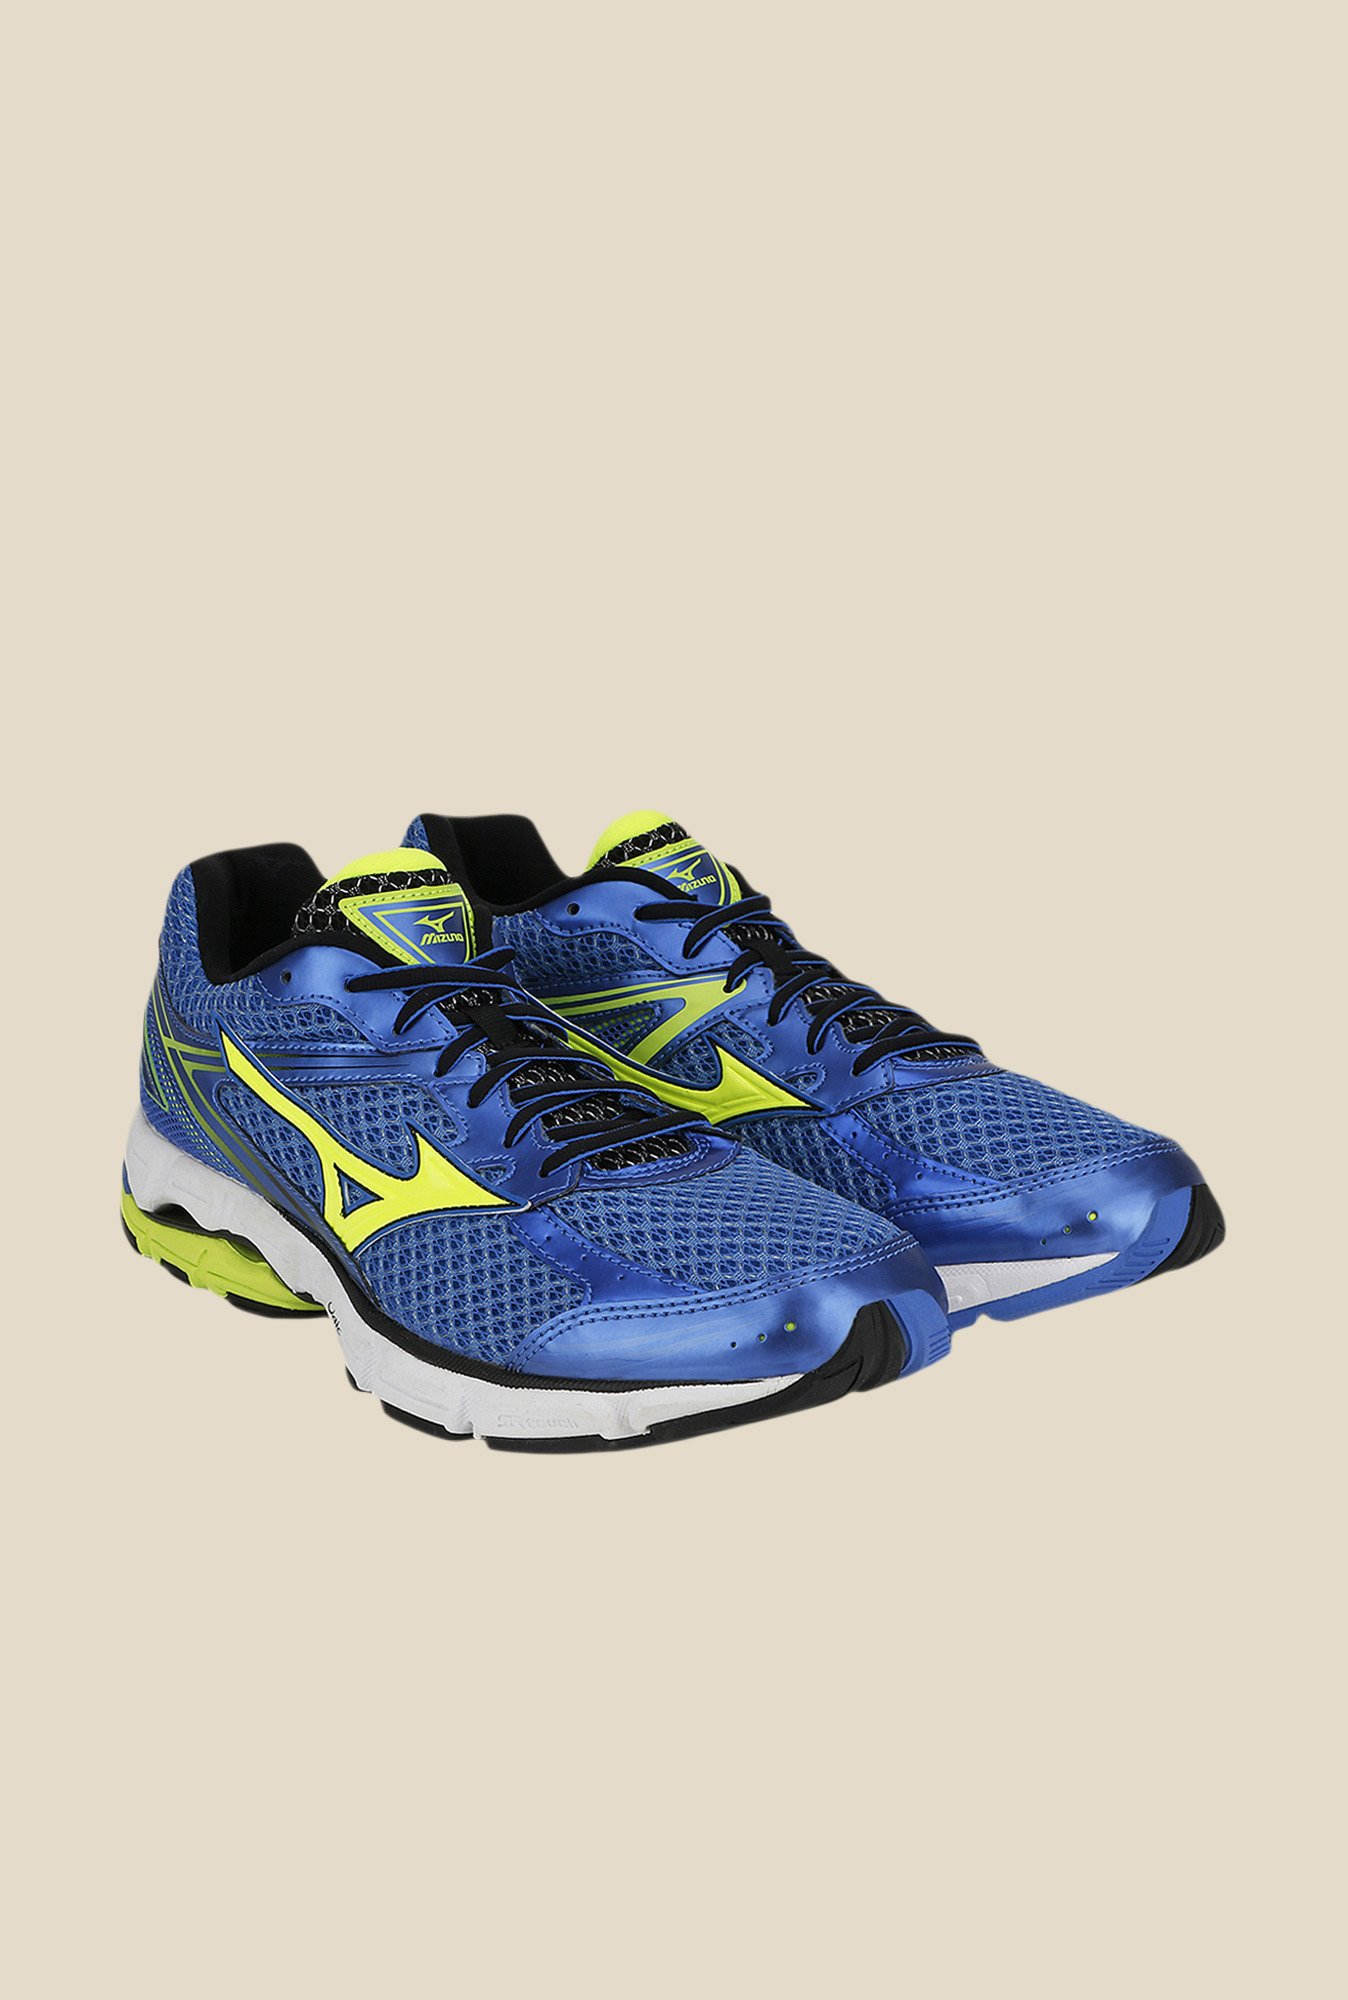 Mizuno Wave Connect 3 Blue & Green Running Shoes